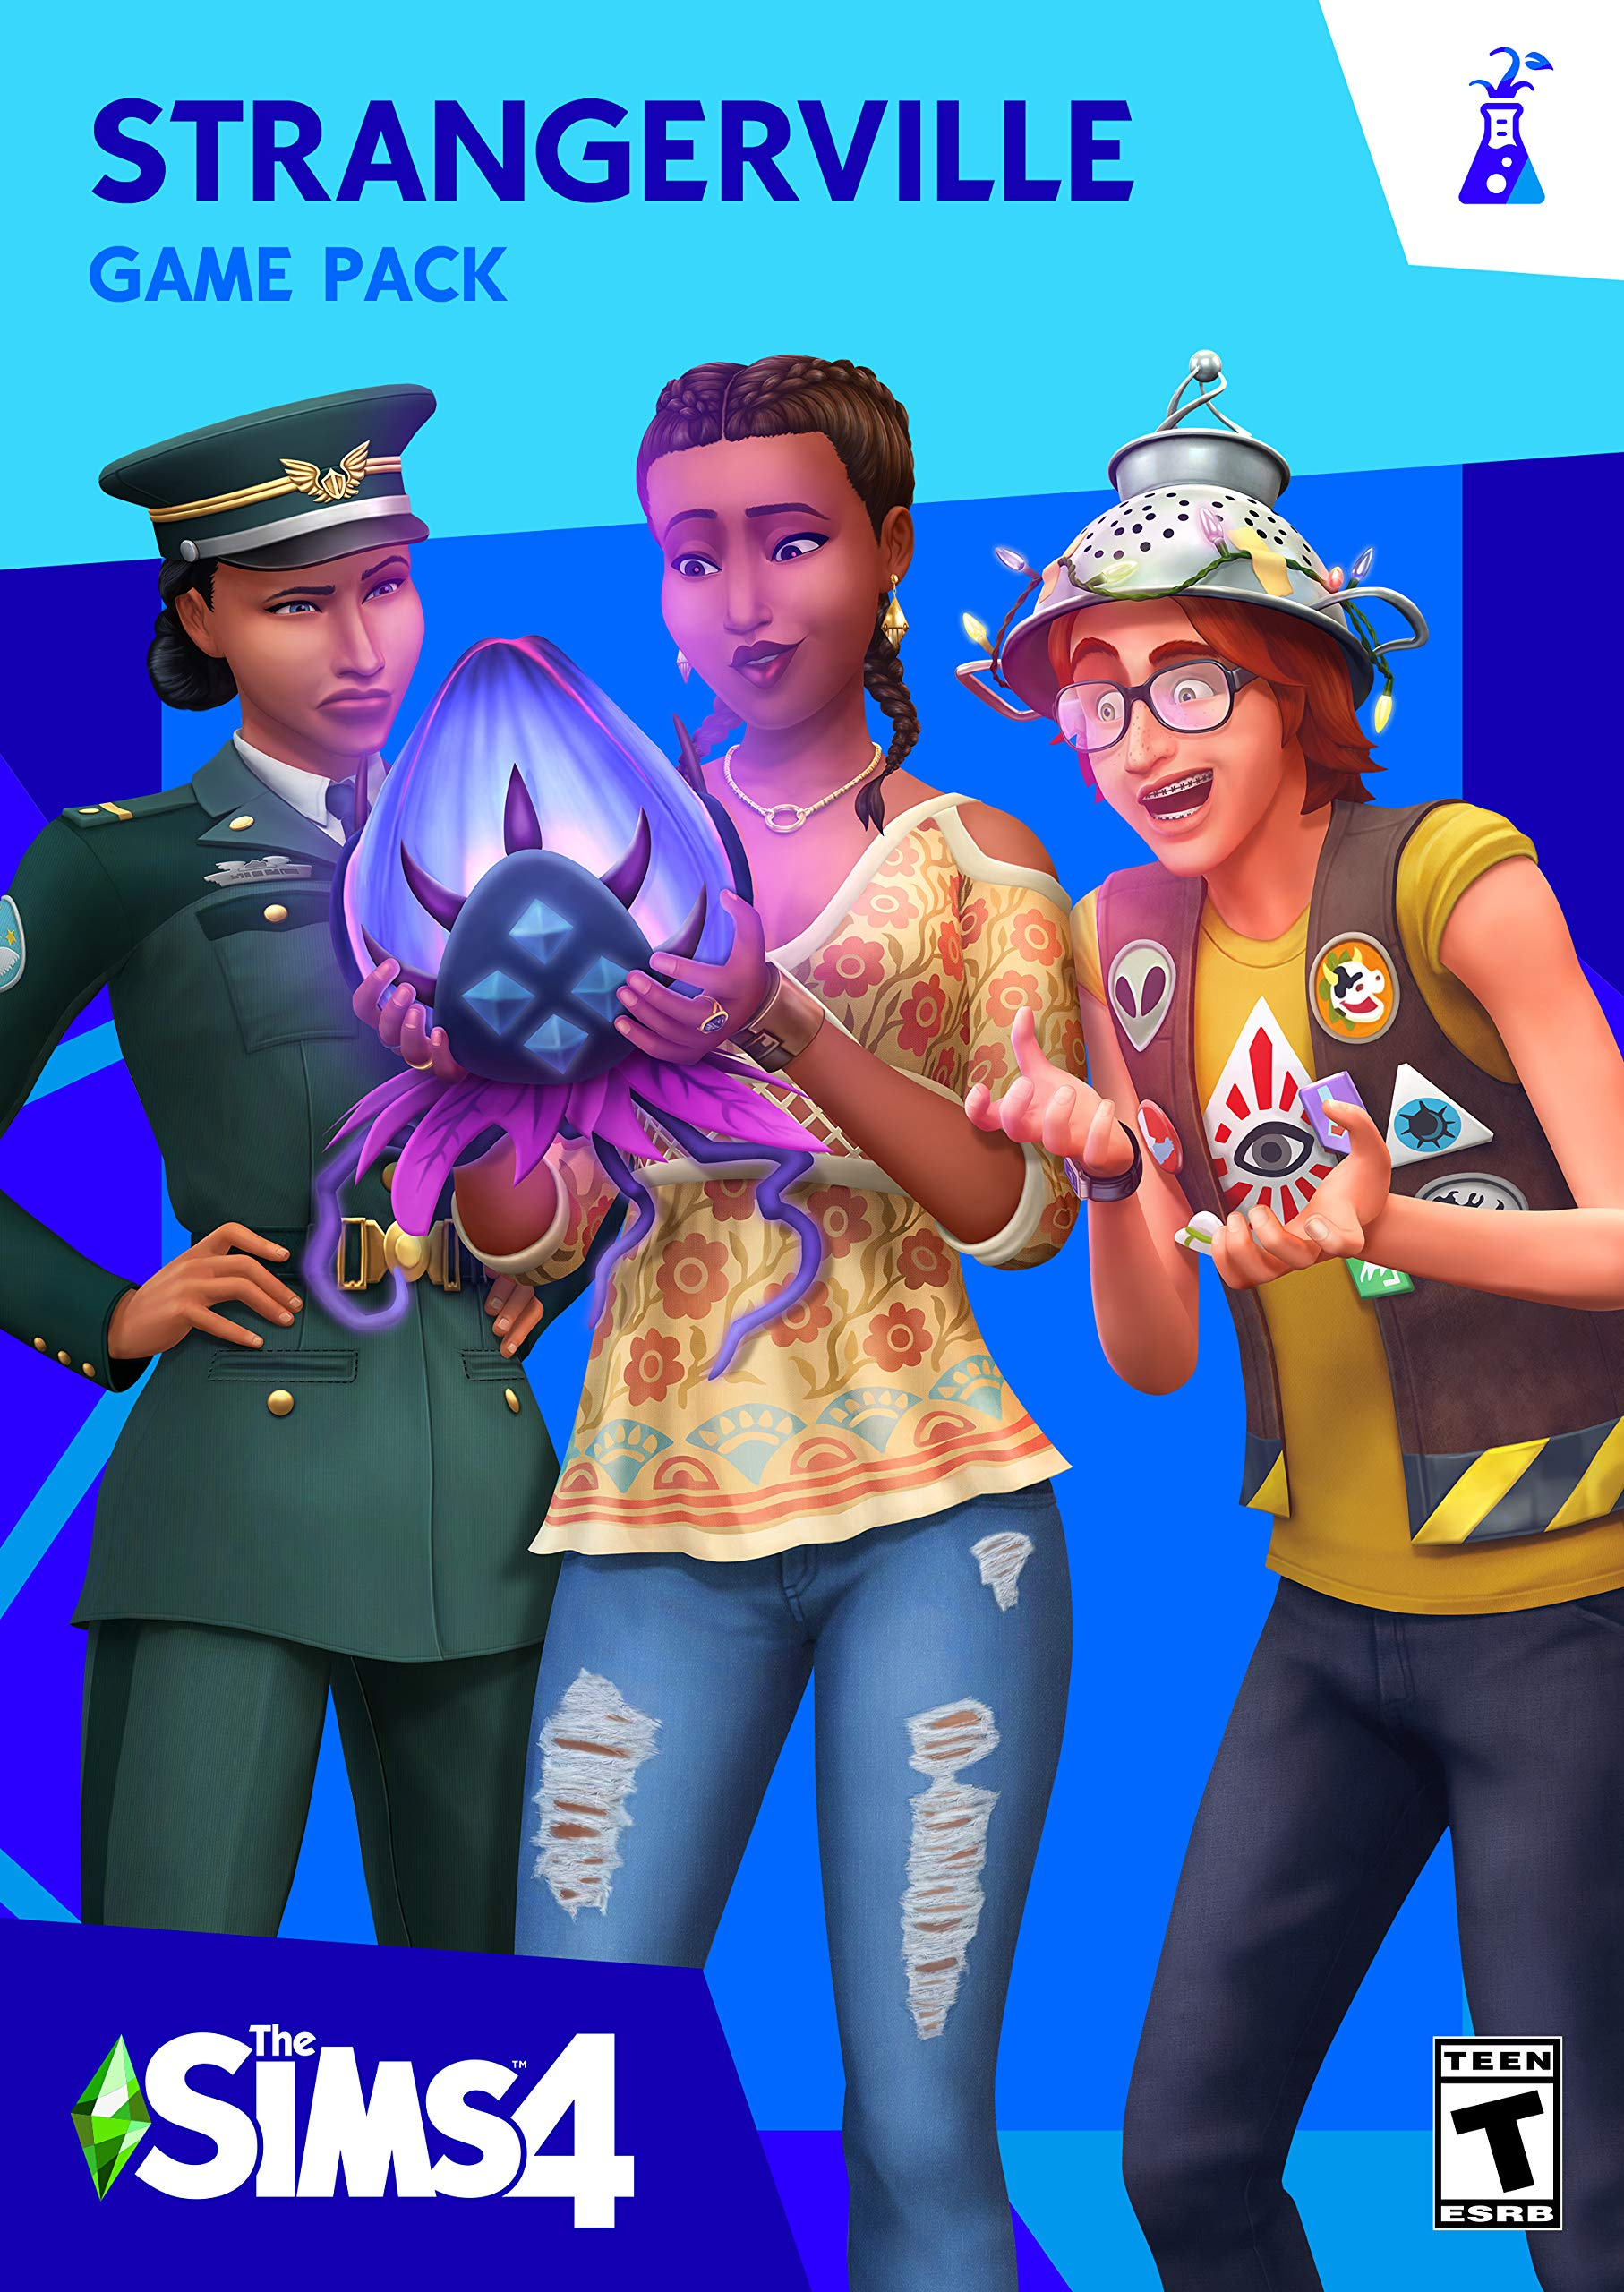 The Sims 4 StrangerVille [Online Game Code] by Electronic Arts